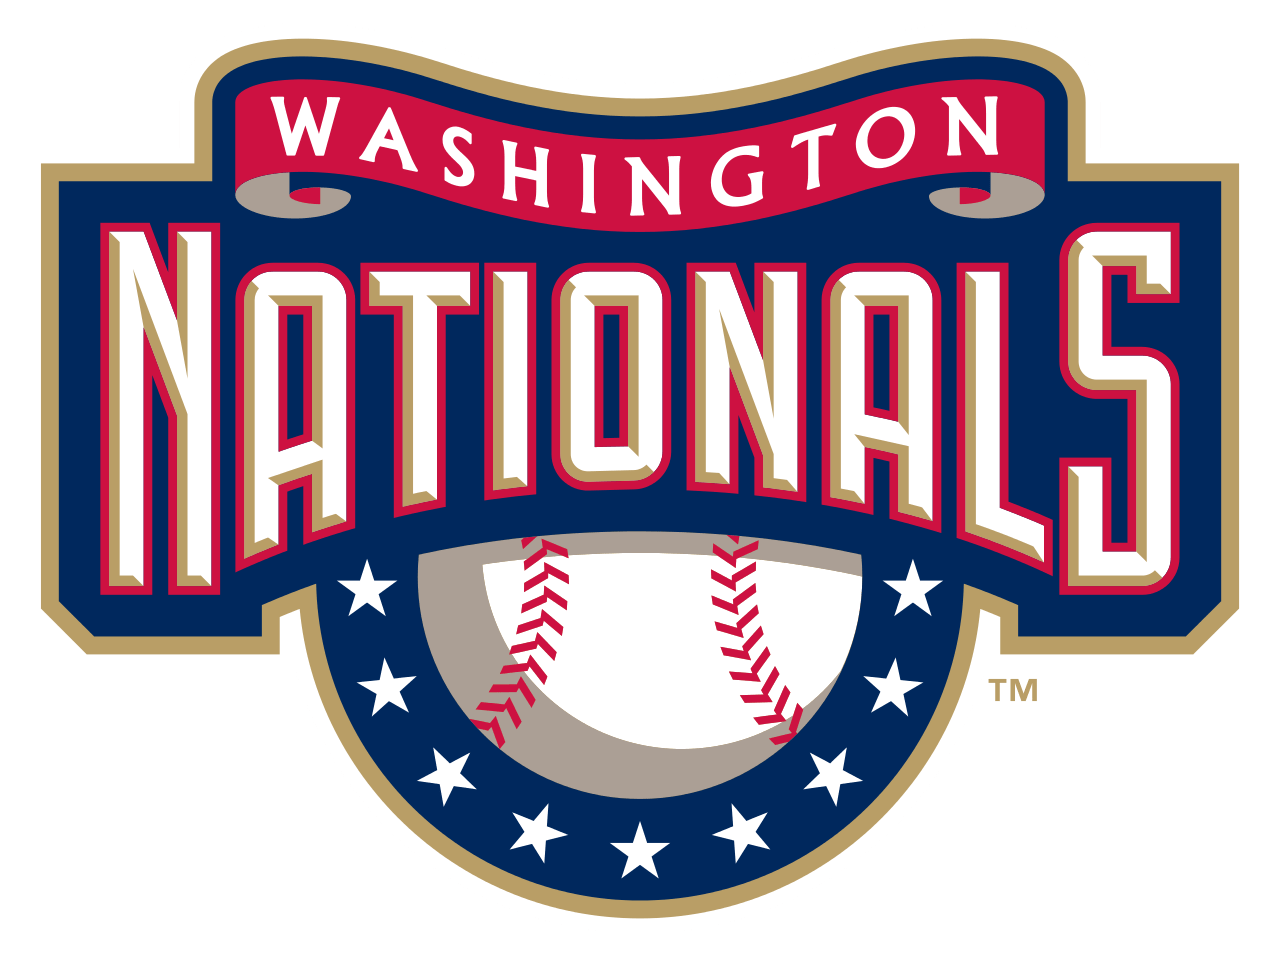 Washington nationals logo png. Sign transparent stickpng download